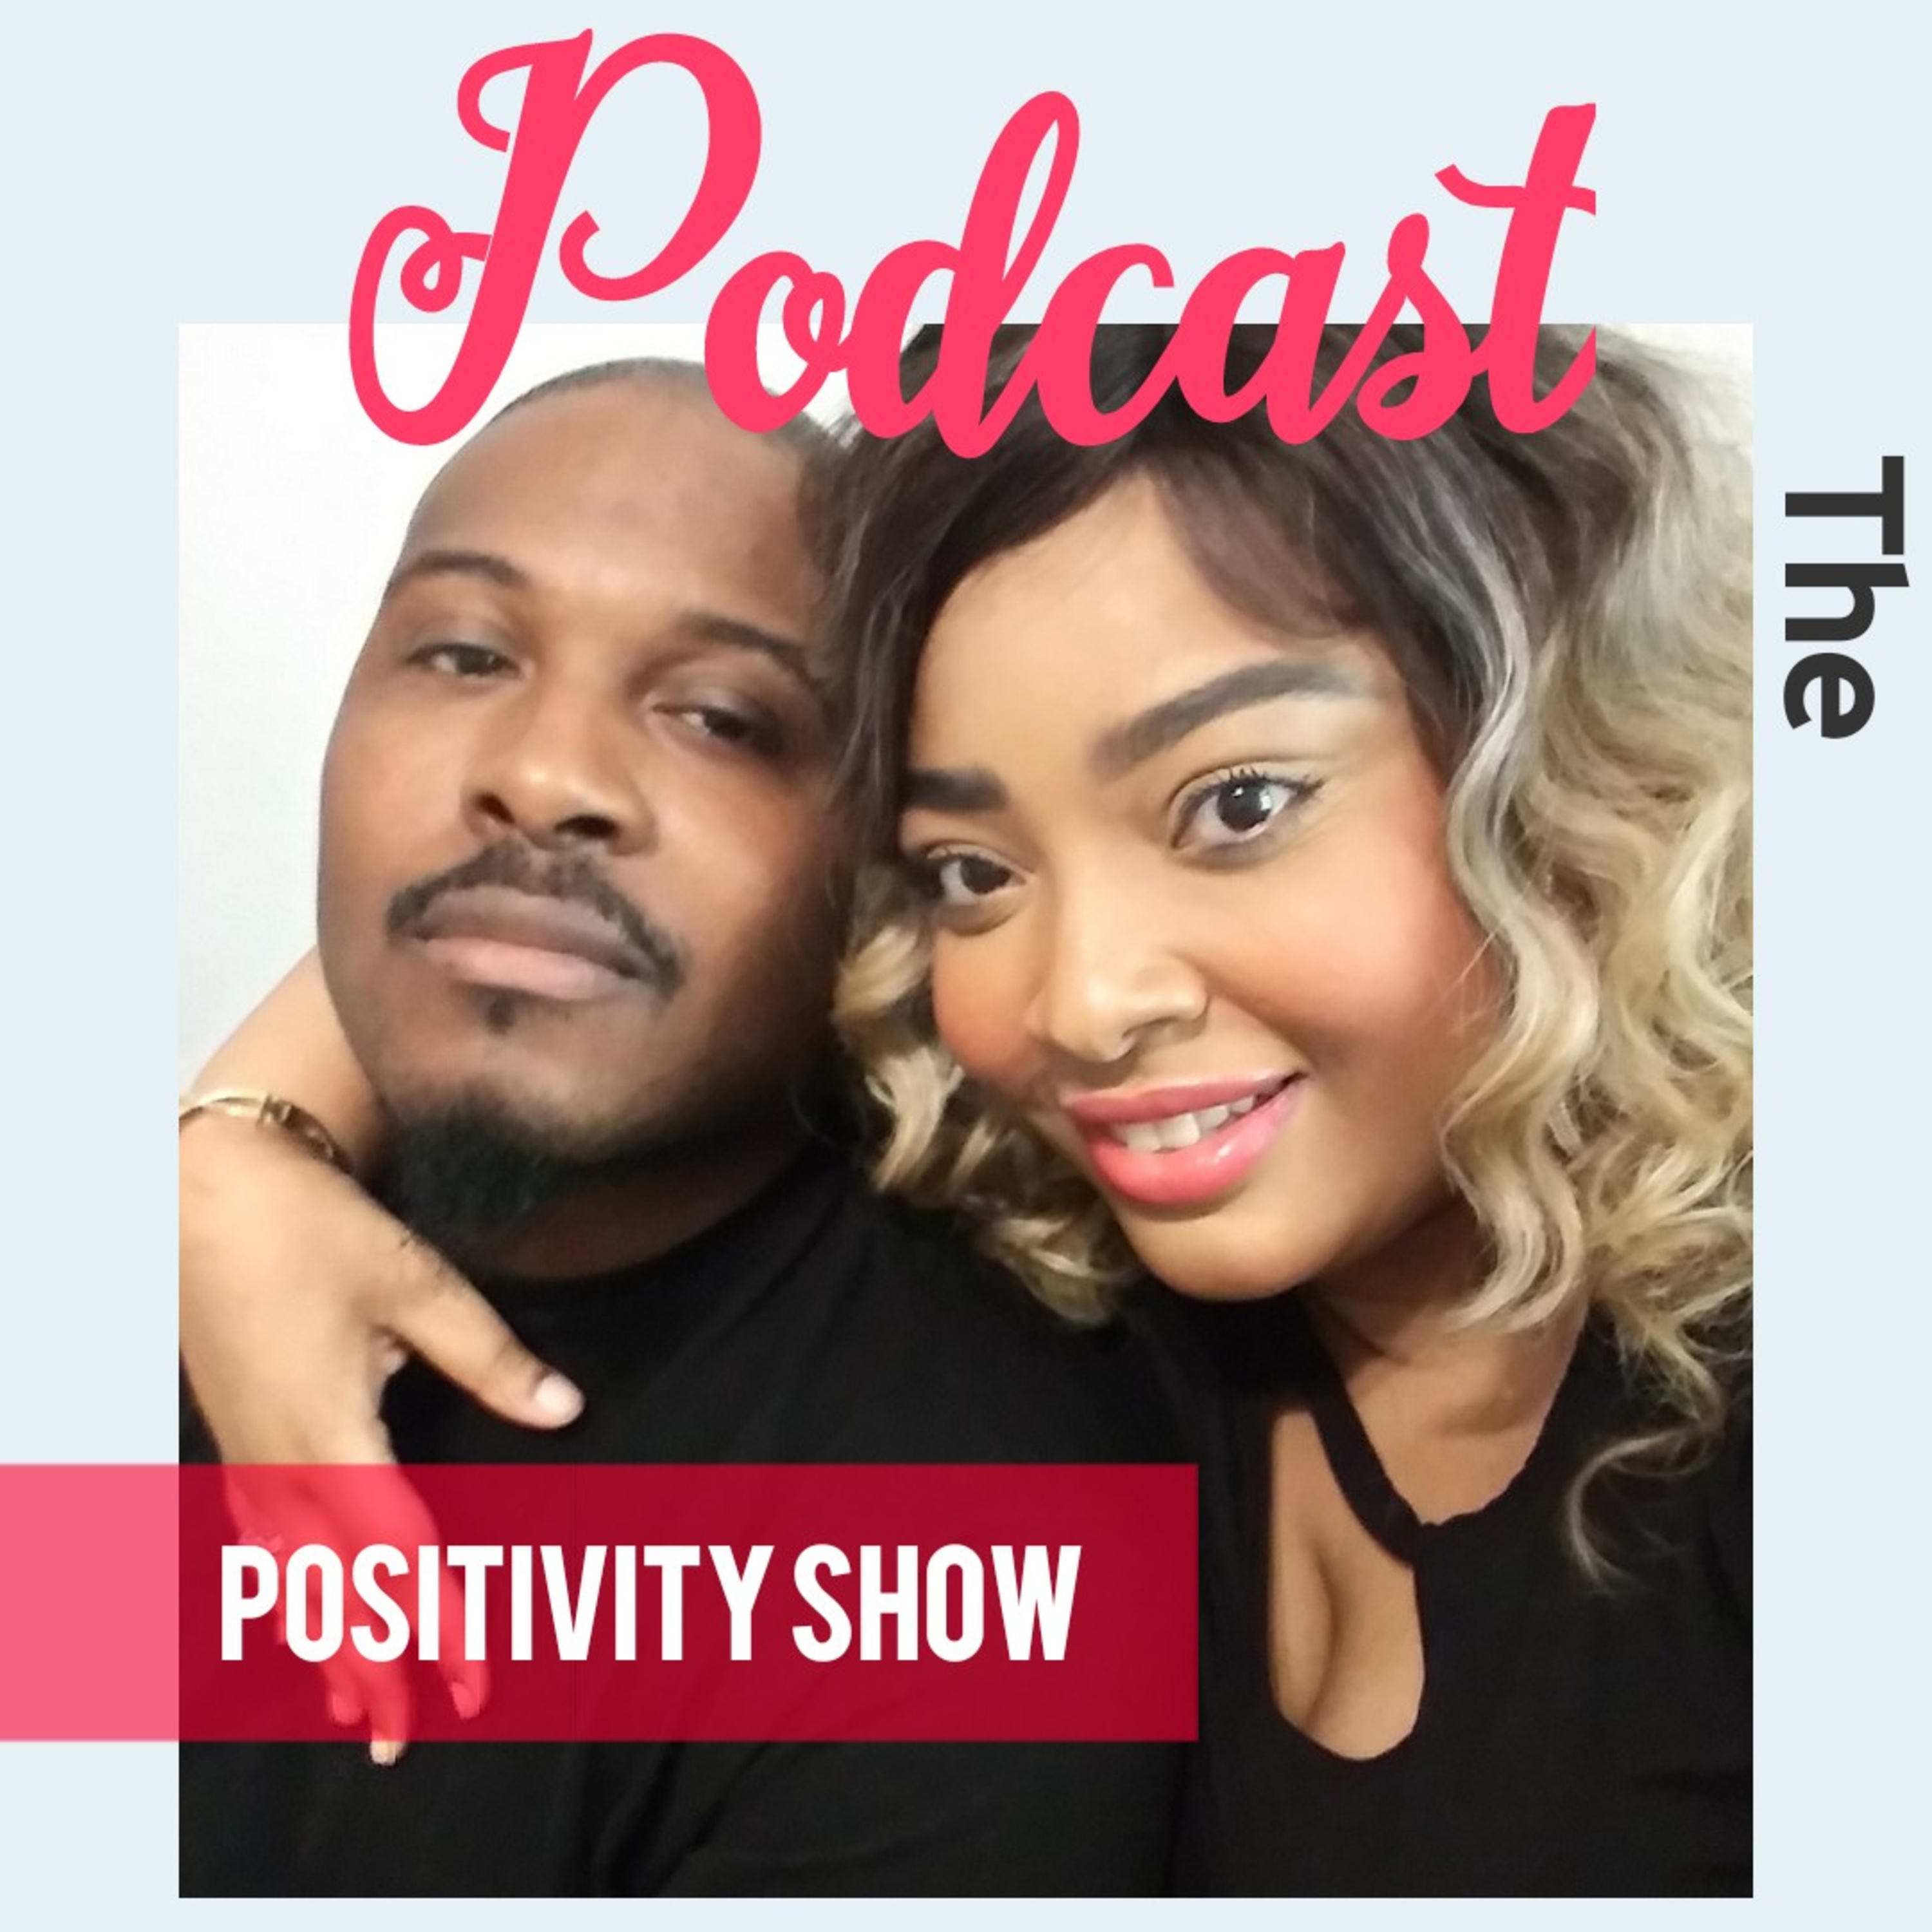 The Podcast Positivity Show